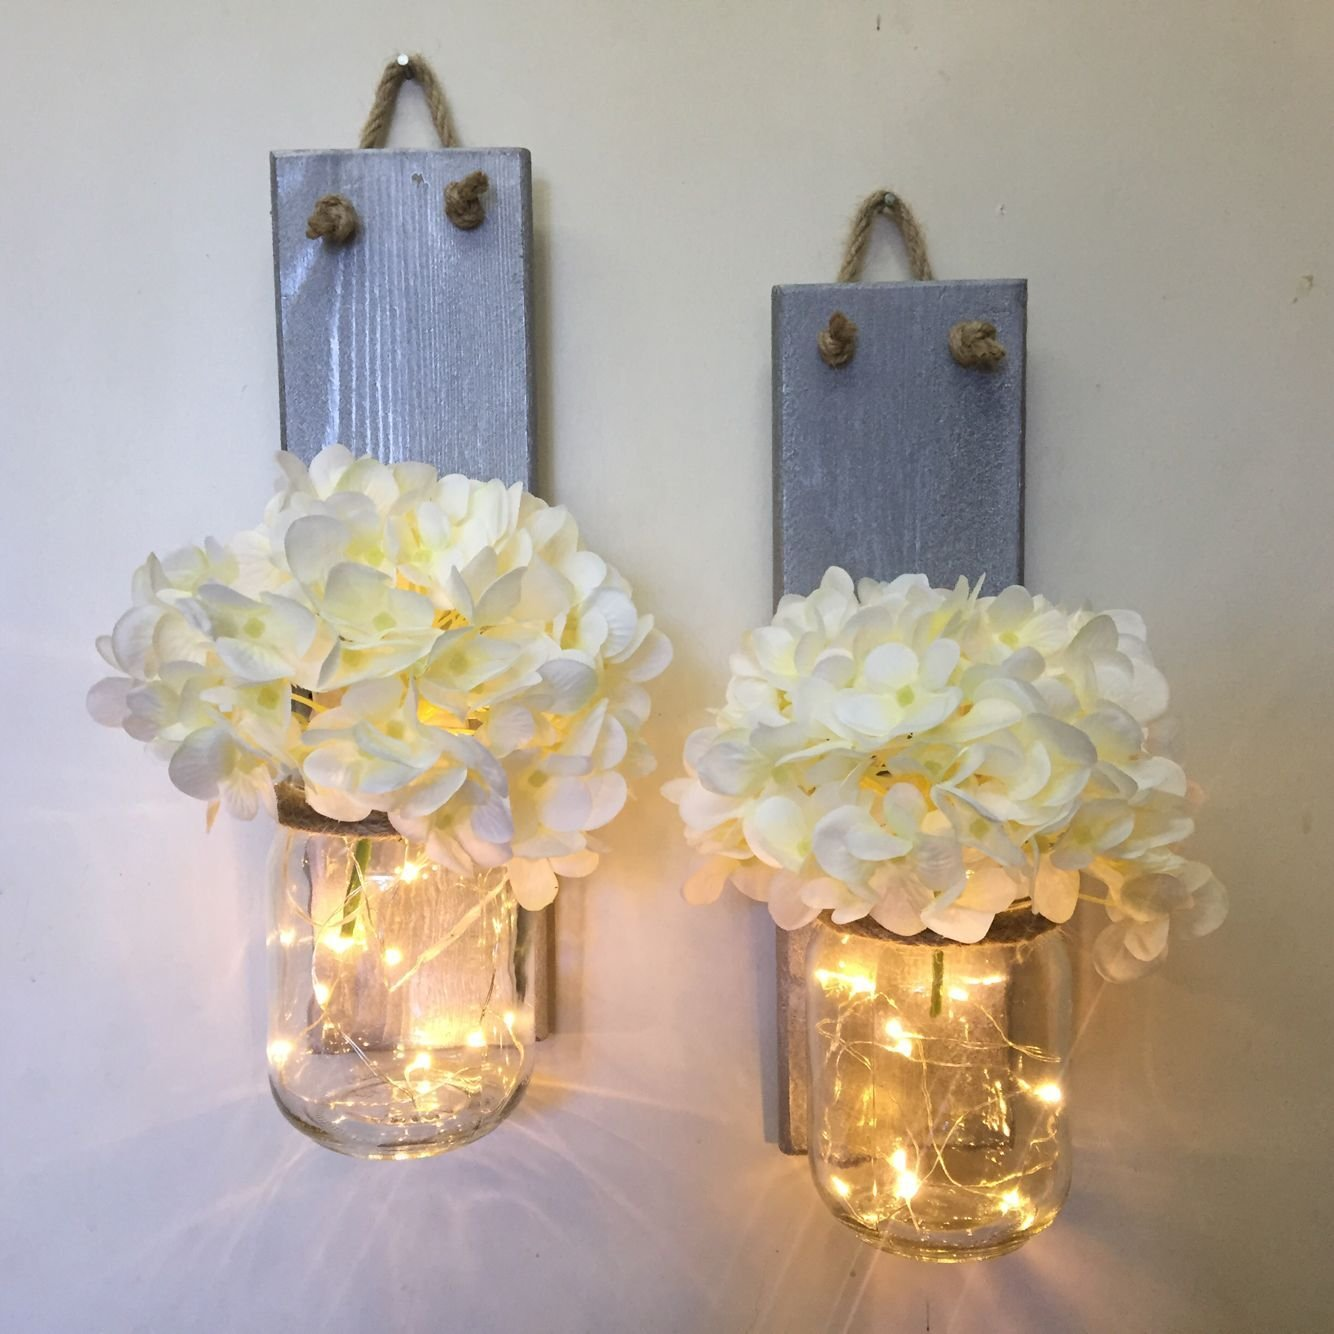 Rustic Mason Jar Sconce With Lights, Lighted Mason Jar Sconce with Flowers, Mason Jar Wall Decor Shabby Chic Silver Wood Wall Sconce, Rustic Wall Decor